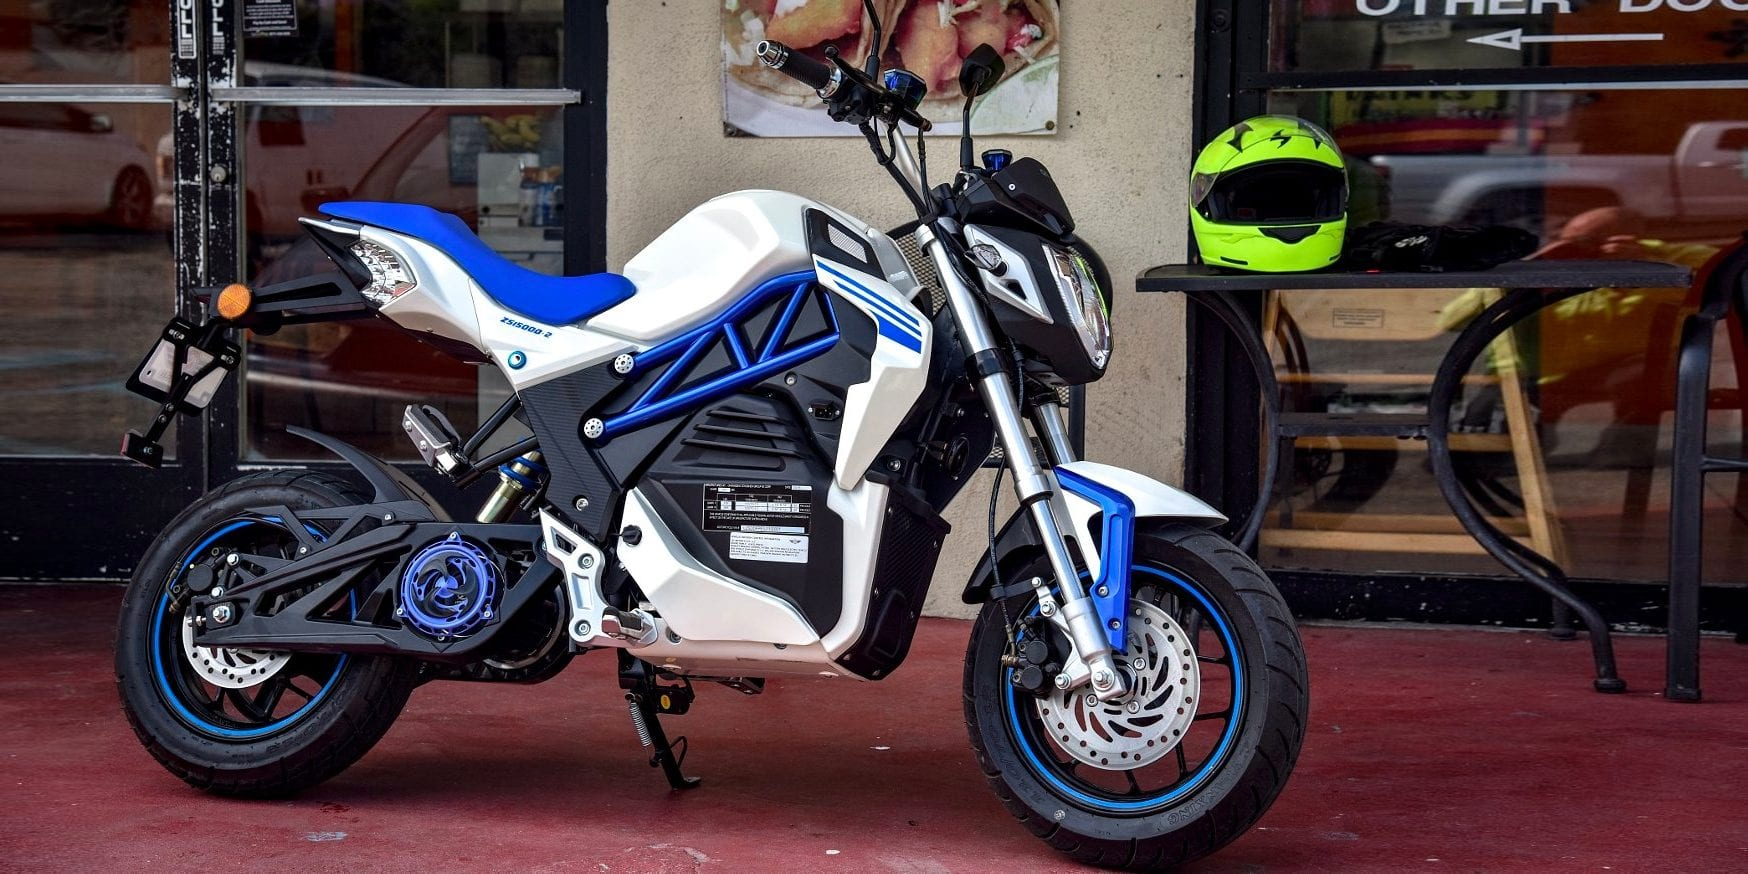 2018 CSC City Slicker, or: Meet the $1995 Electric Motorcycle